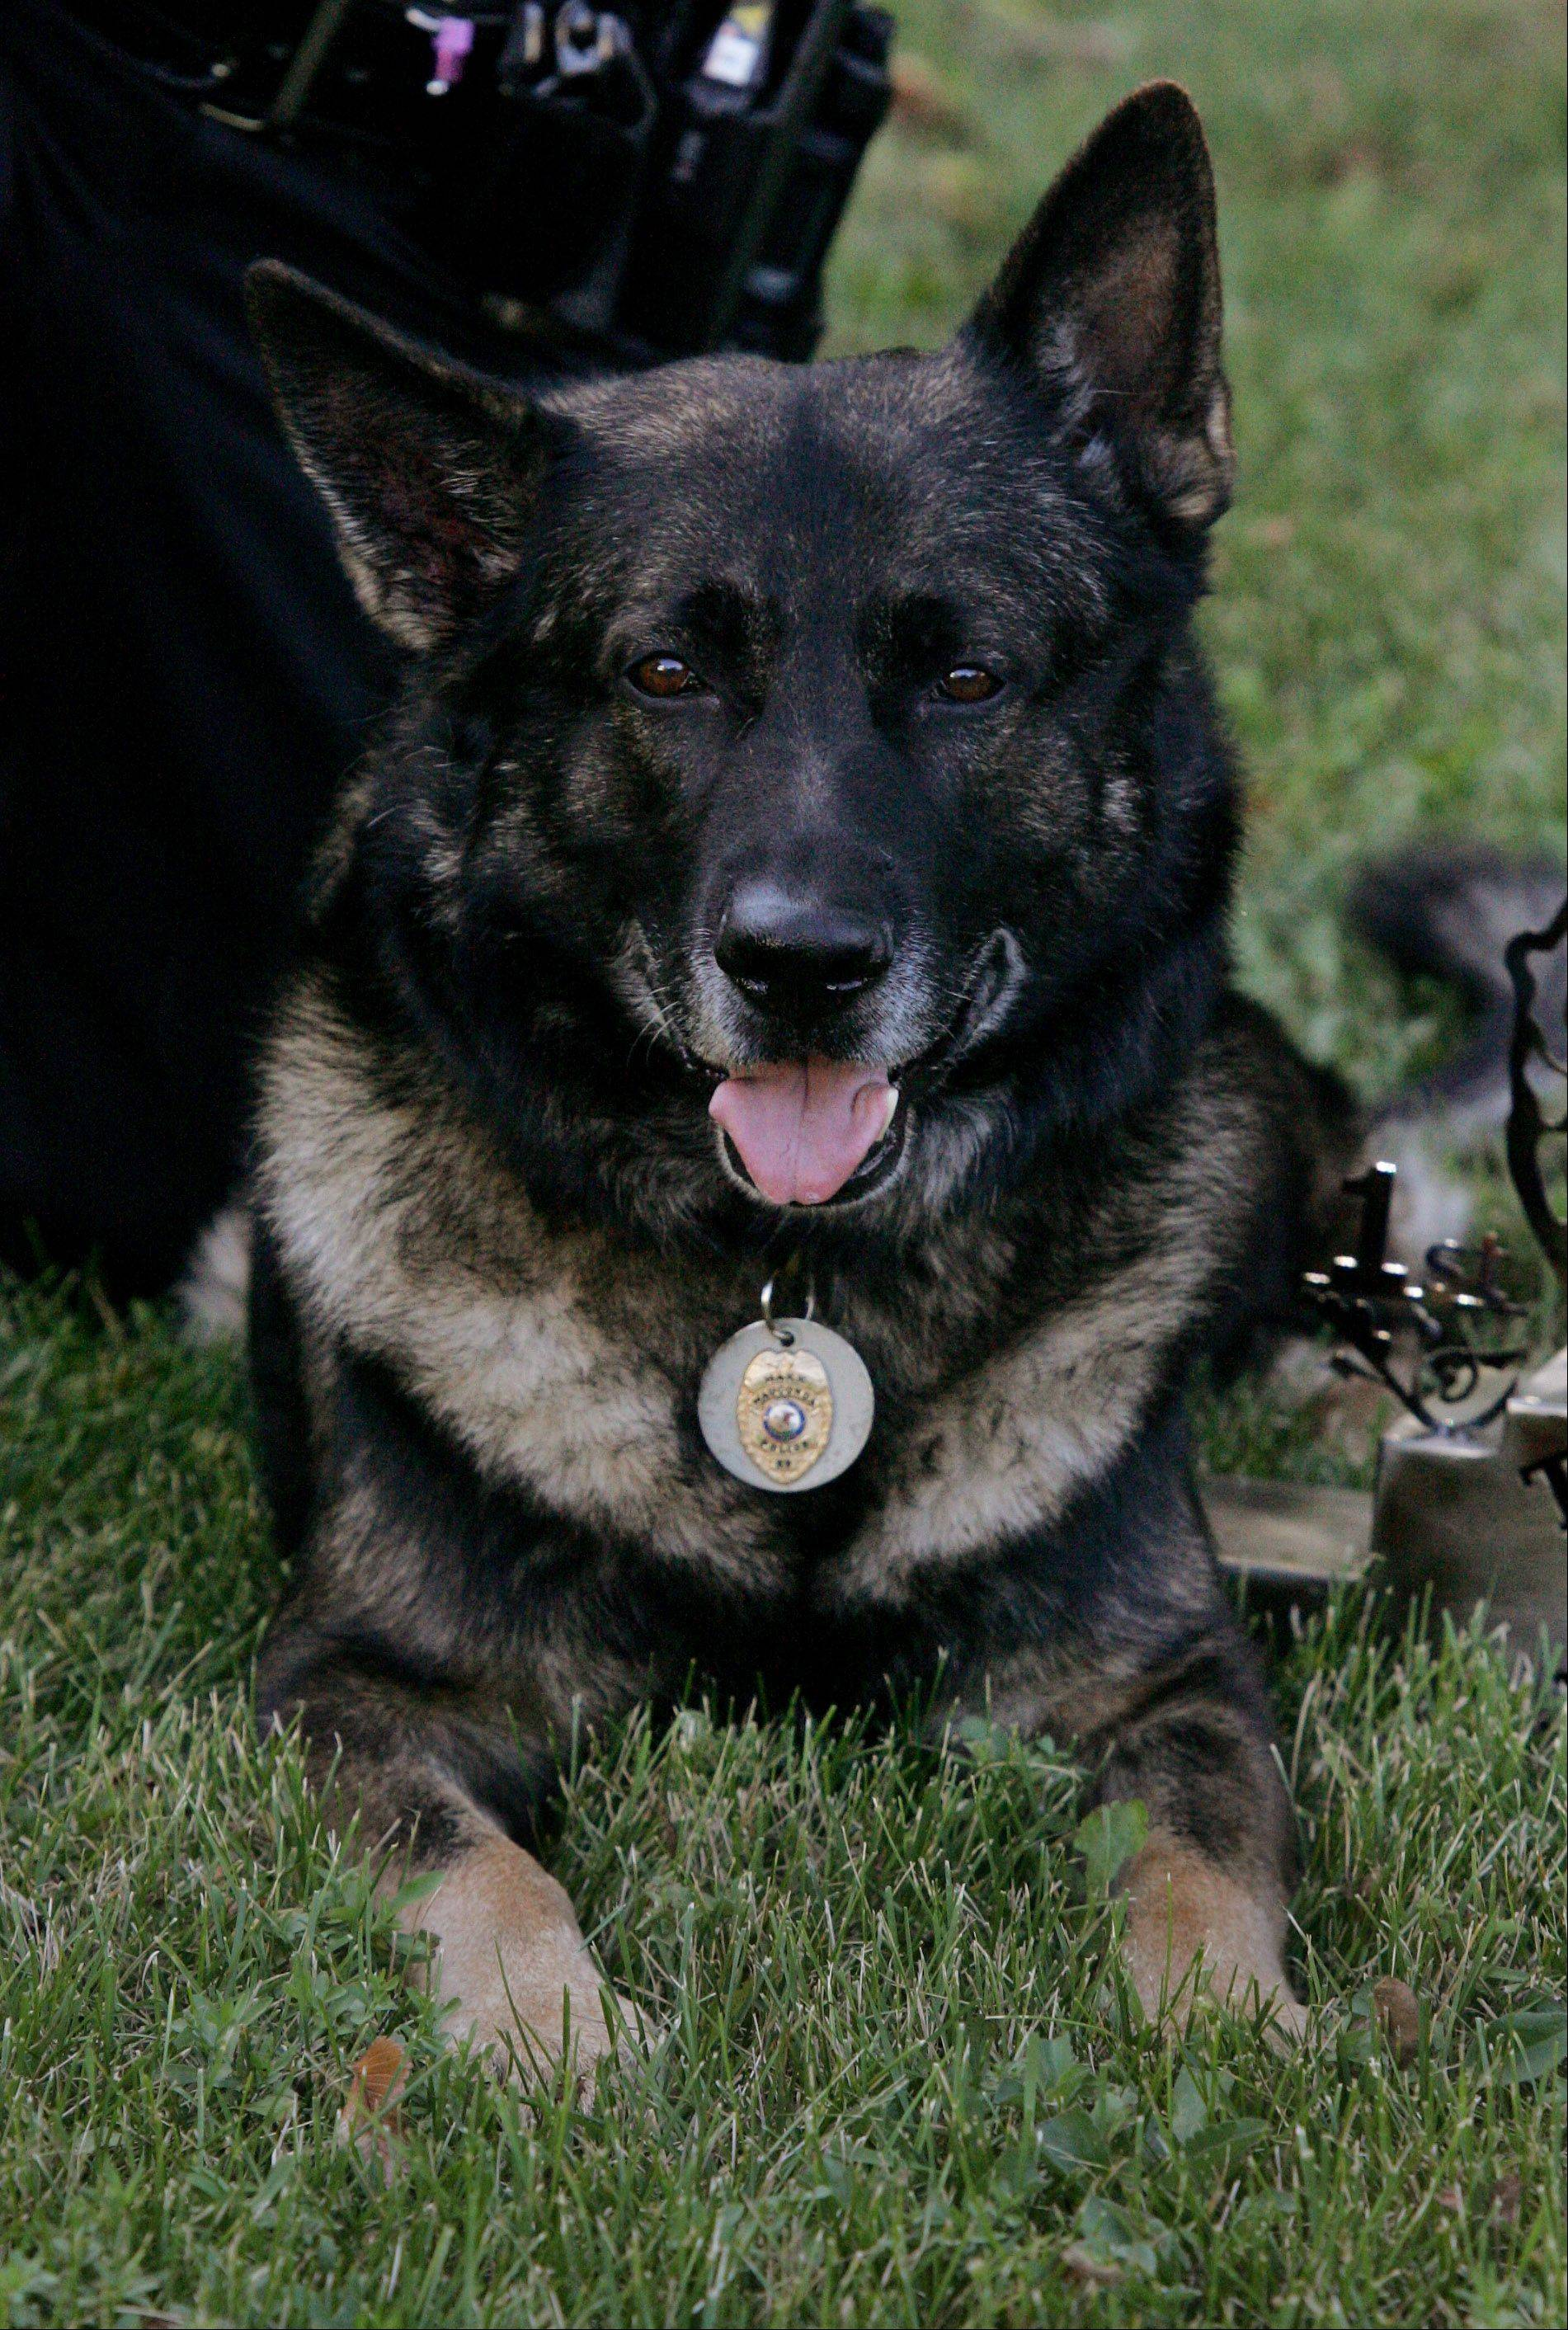 Maxx is the canine partner of Wauconda police Sgt. John Combs.